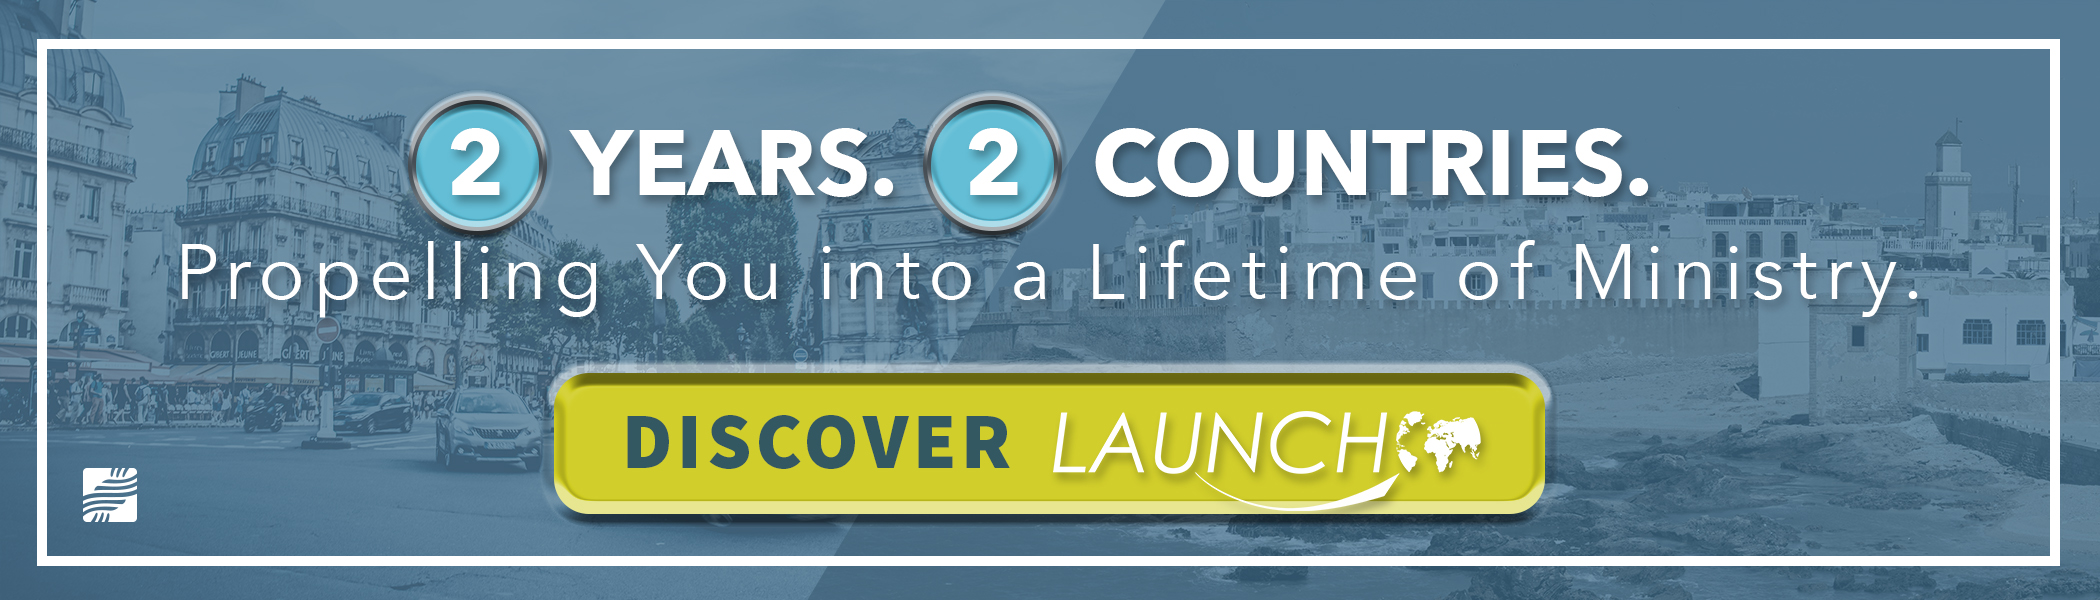 2 Years. 2 Countries. Propelling you into a lifetime of ministry. Click here to discover Launch.